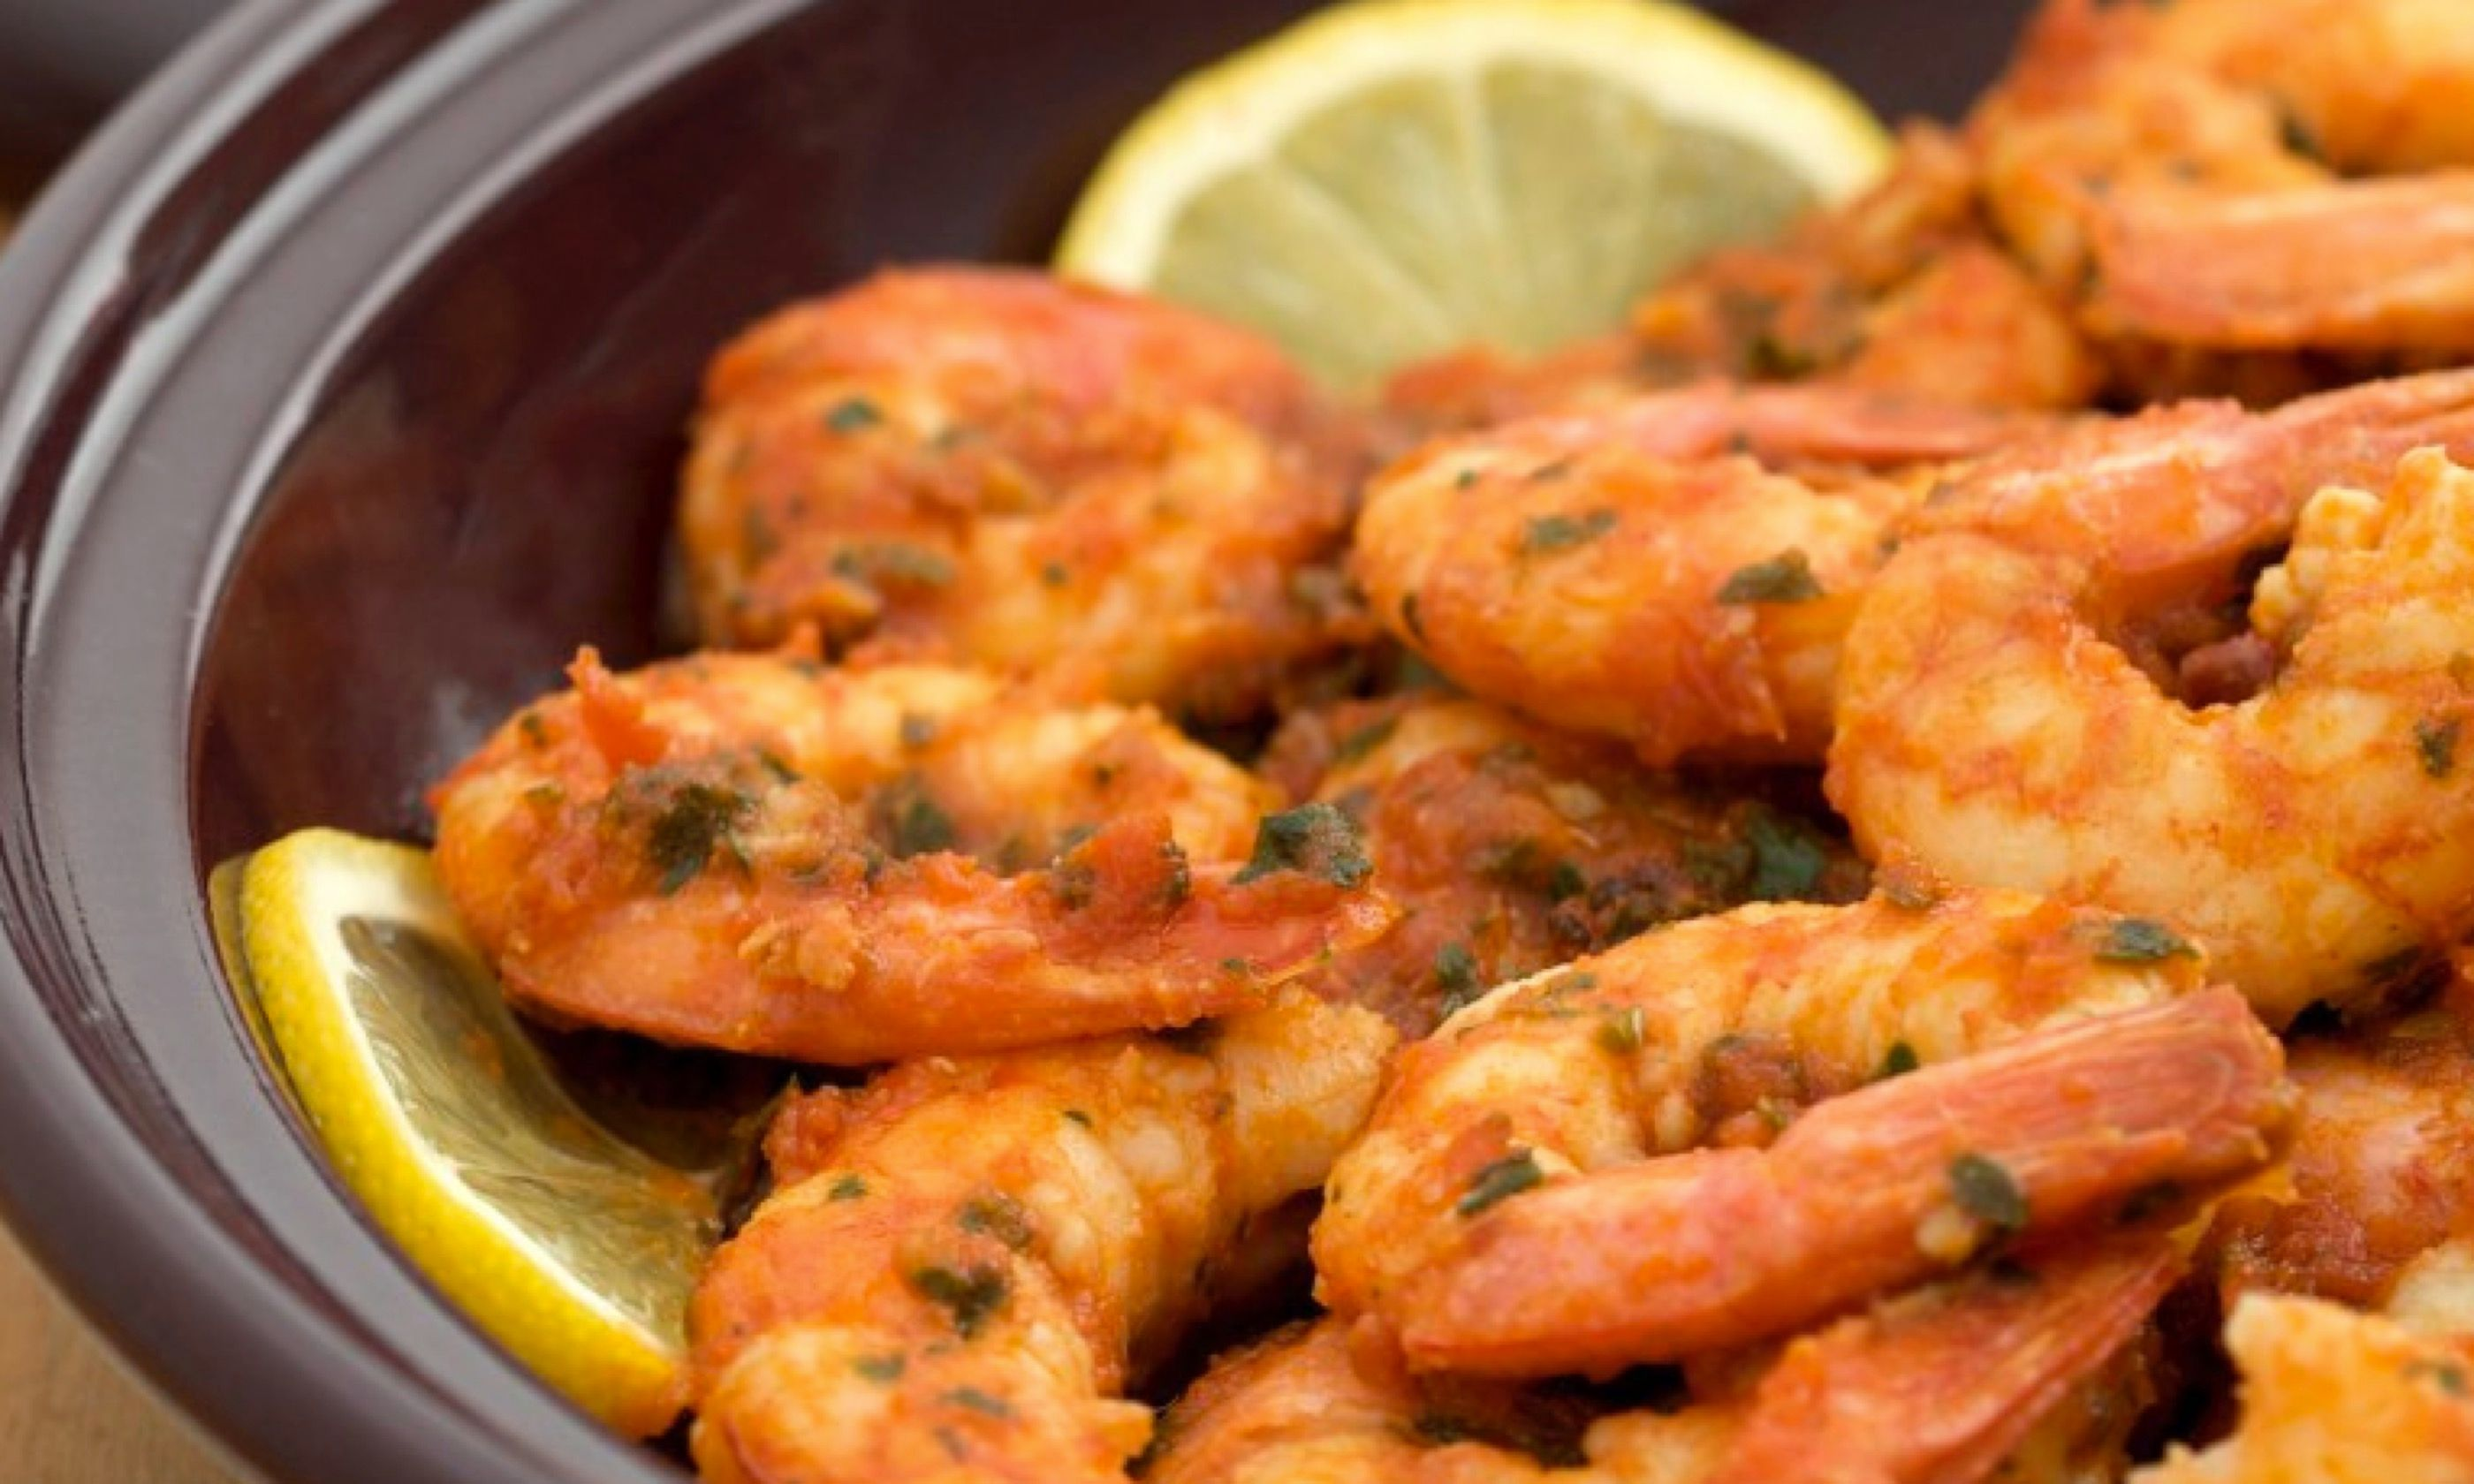 Spicy Shrimp Tagine (Jeff Koehler)